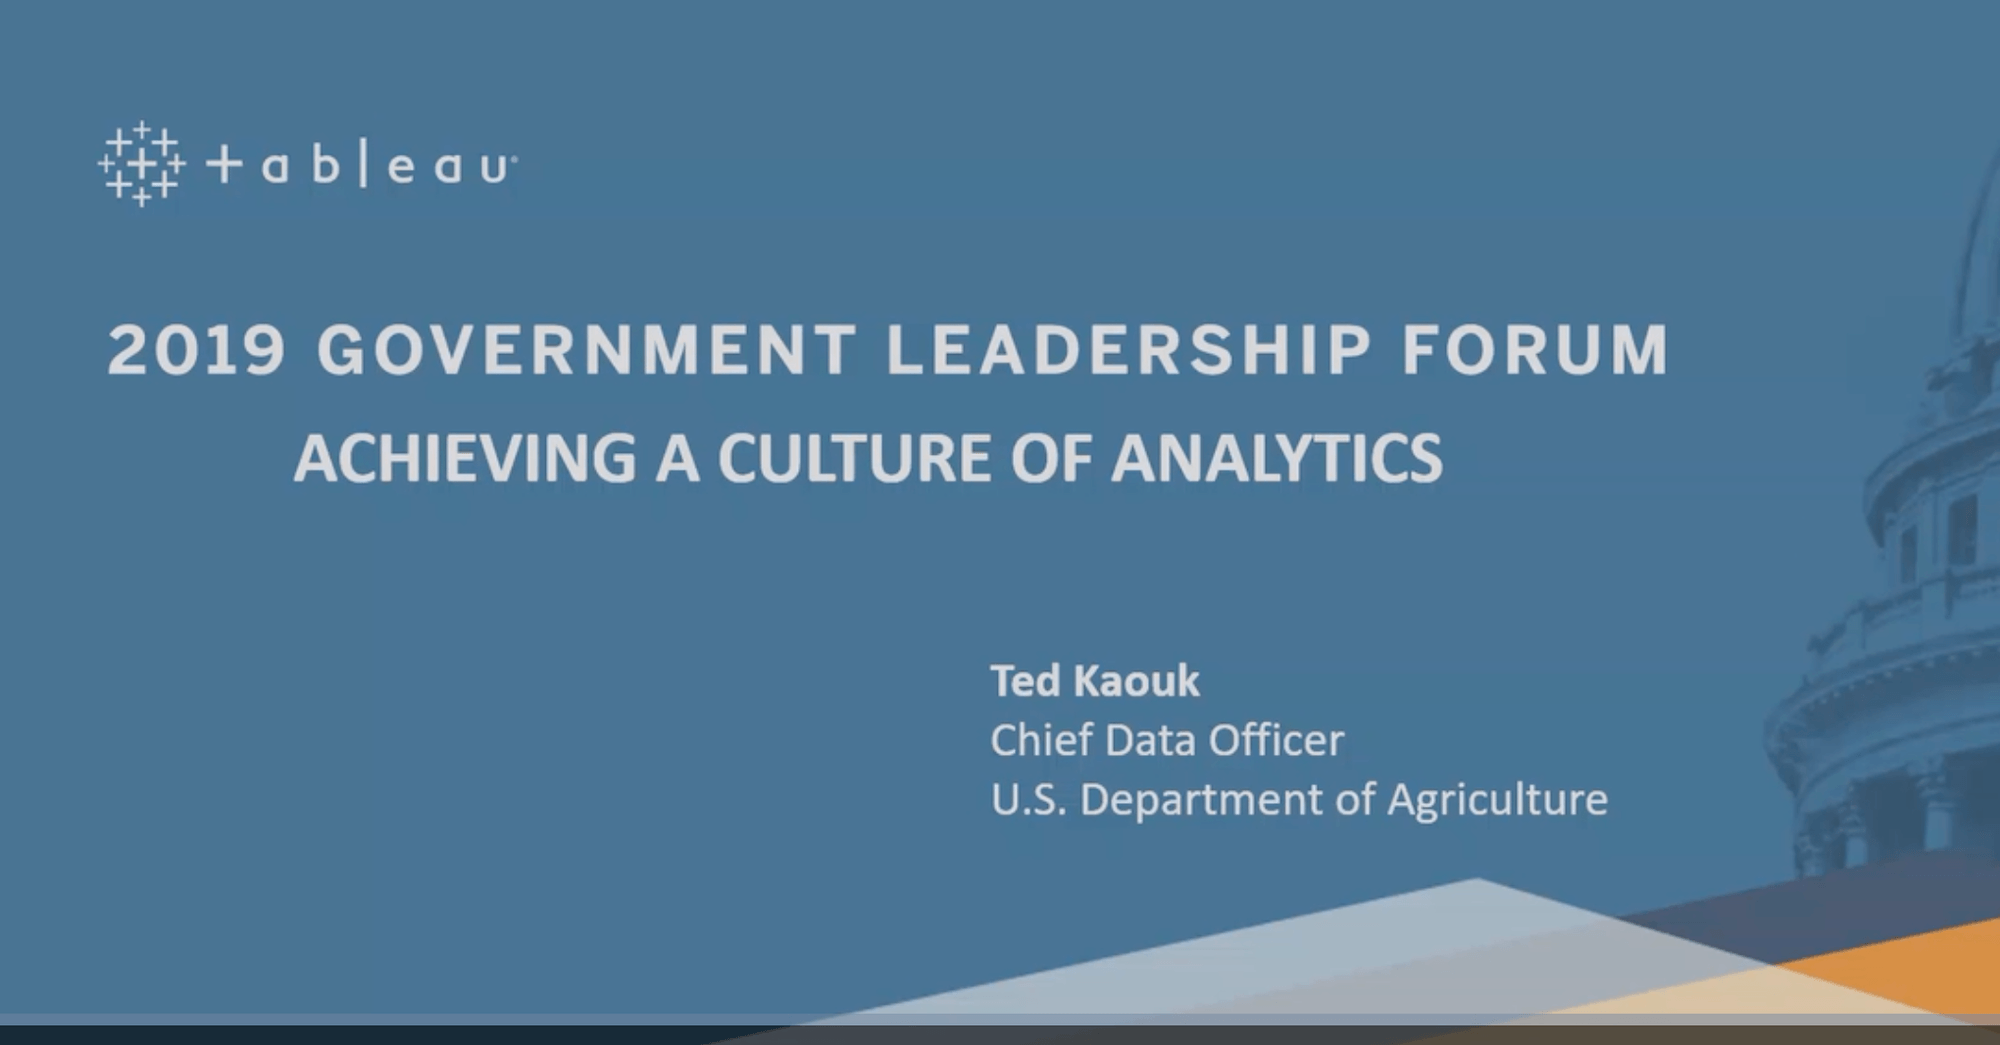 瀏覽至 USDA: Achieving a Culture of Analytics